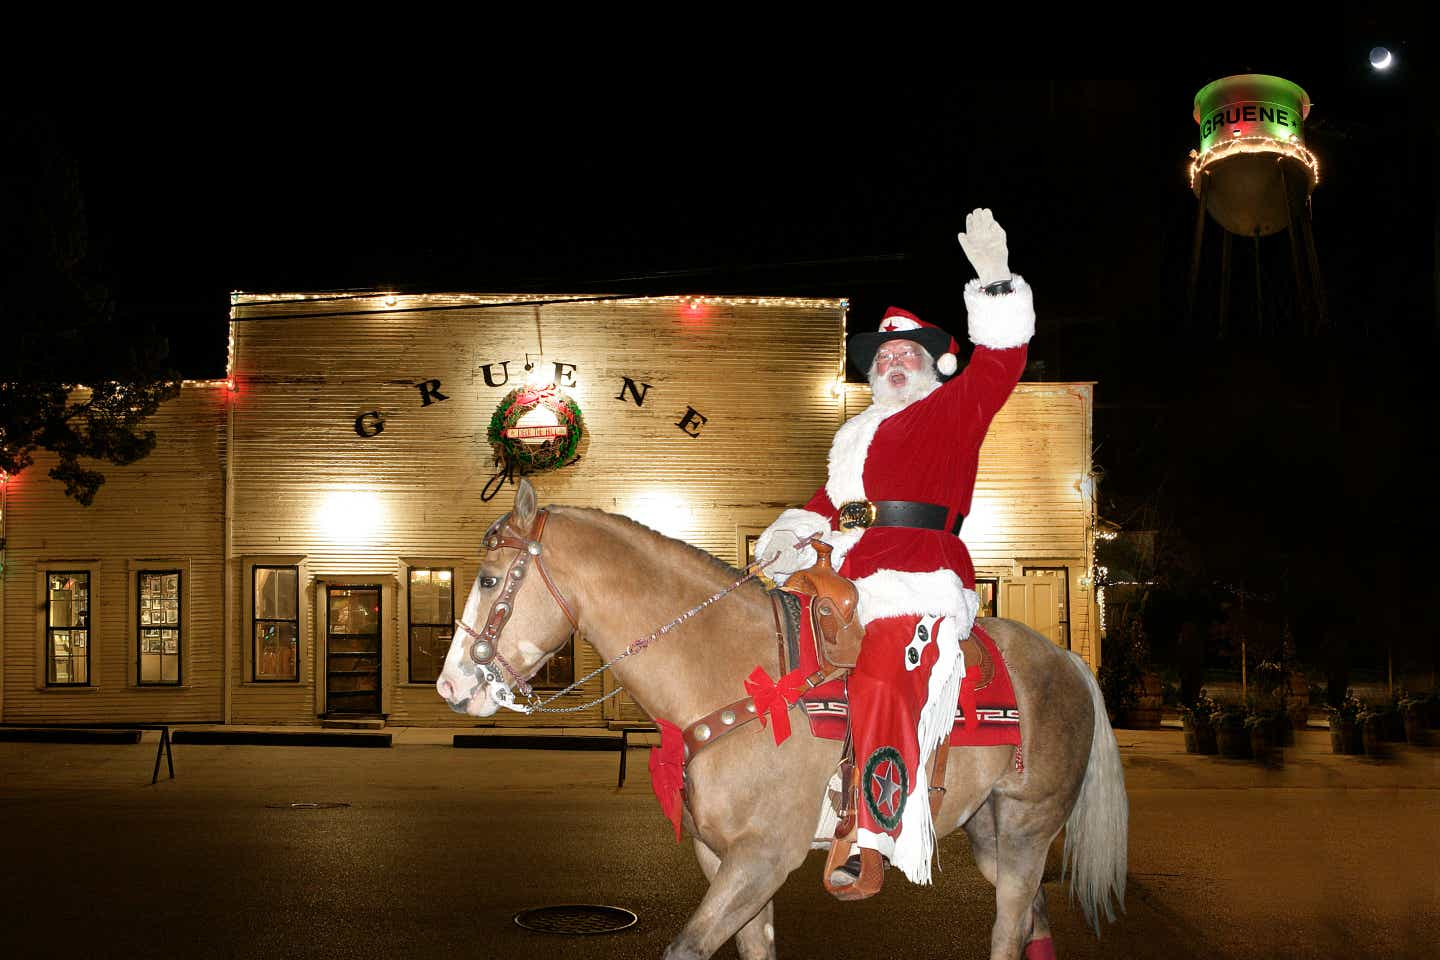 Cowboy Kringle wears a cowboy hat and red suit while riding a horse and waving to guests.